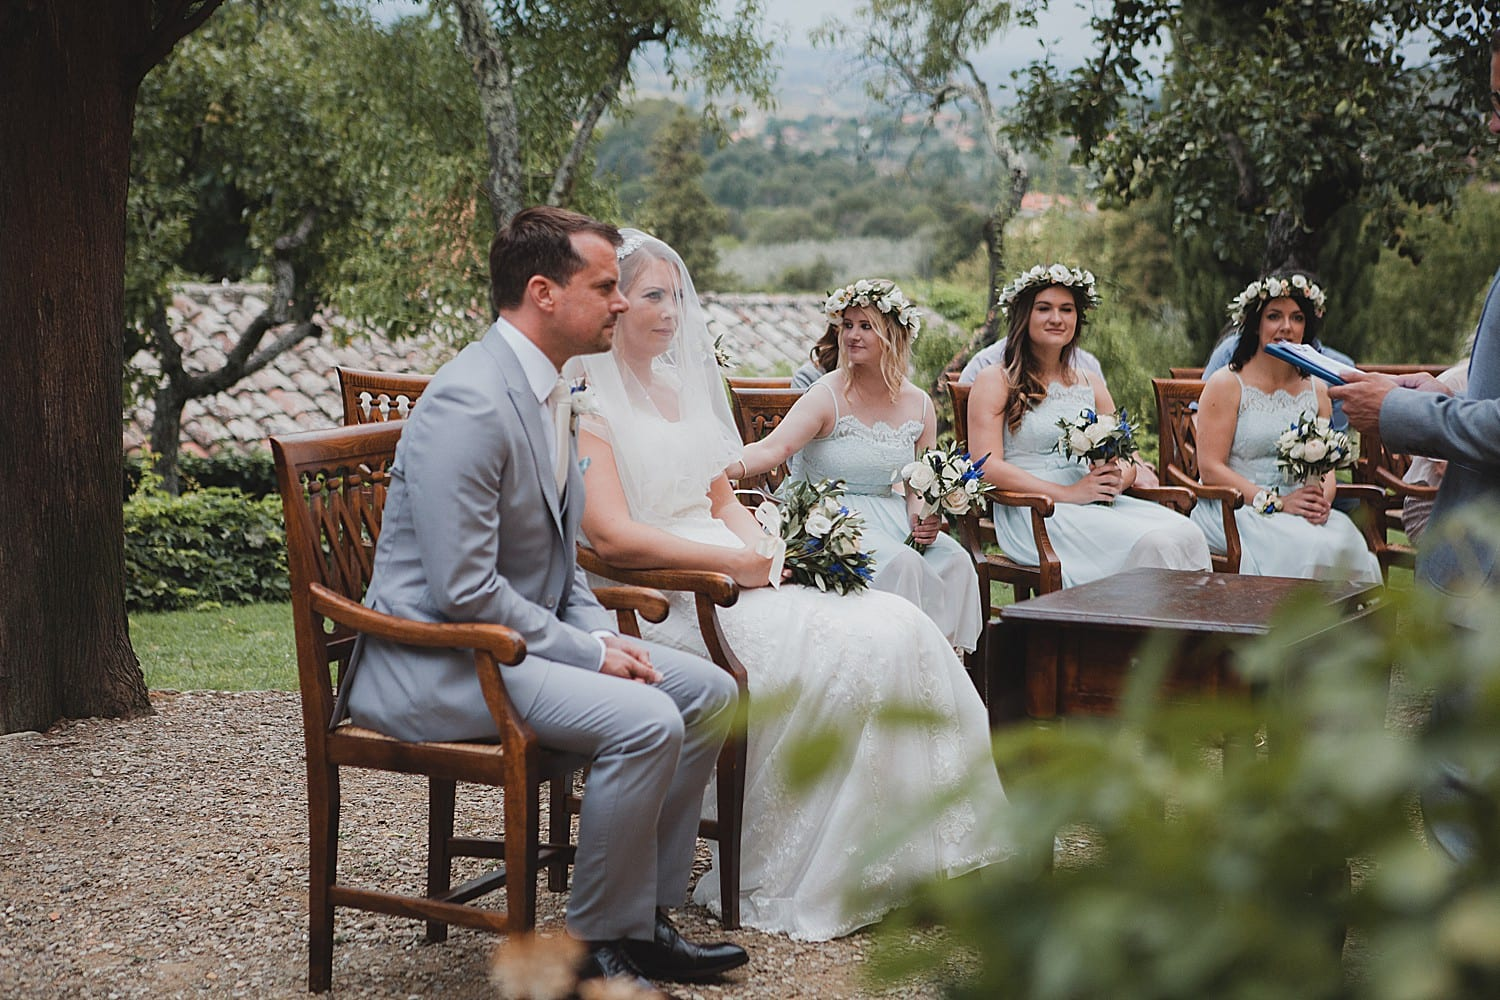 Wedding at Il Falconiere in Tuscany